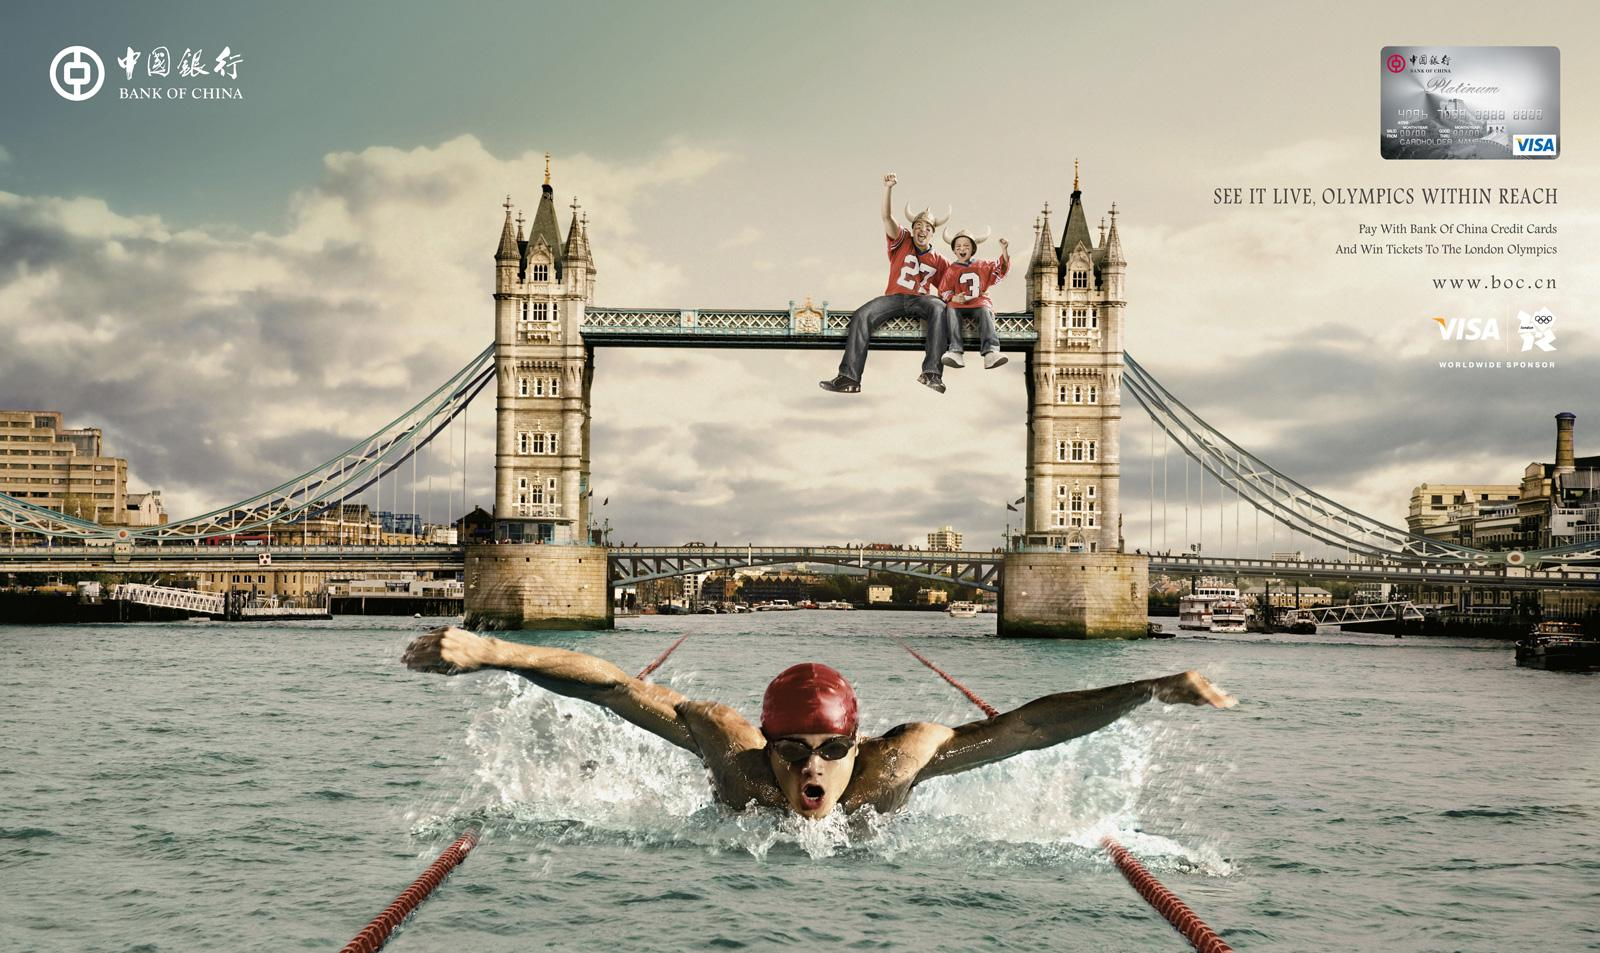 Bank of China Print Ad -  2012 London Olympics Campaign, London Tower Bridge